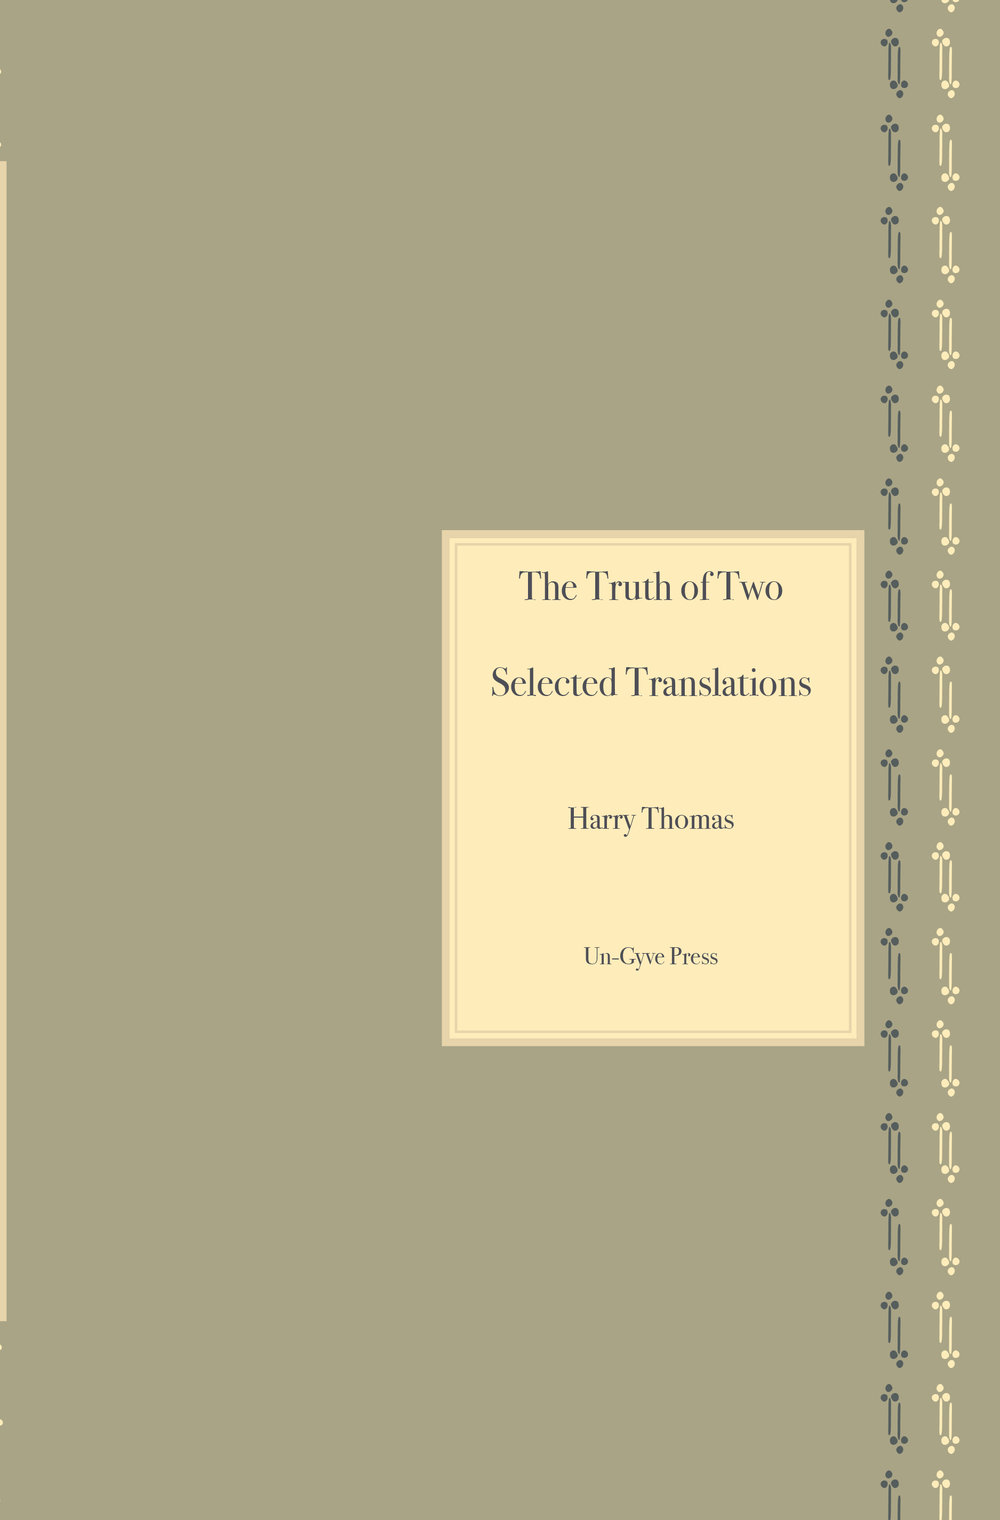 The Truth of Two front cover graphic.jpg